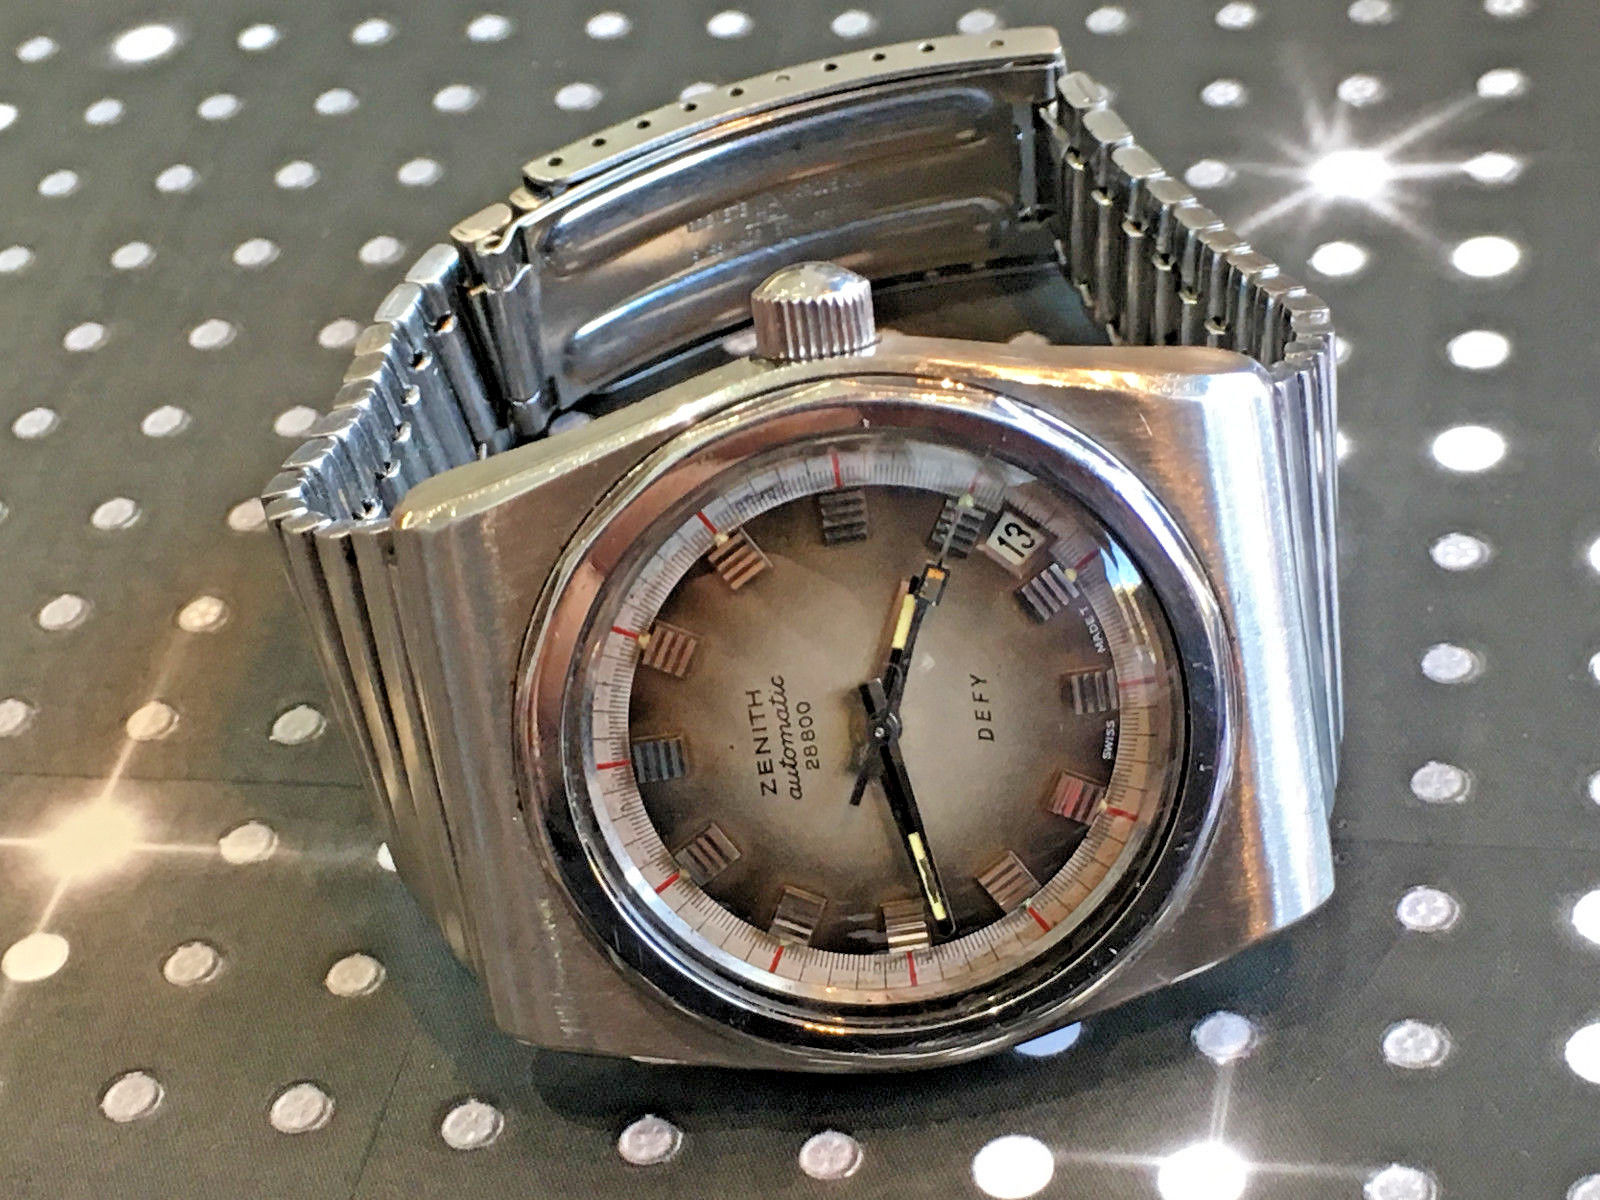 Funky and original Zenith Defy that would make a great weekend watch! Pic courtesy of eBay listing.